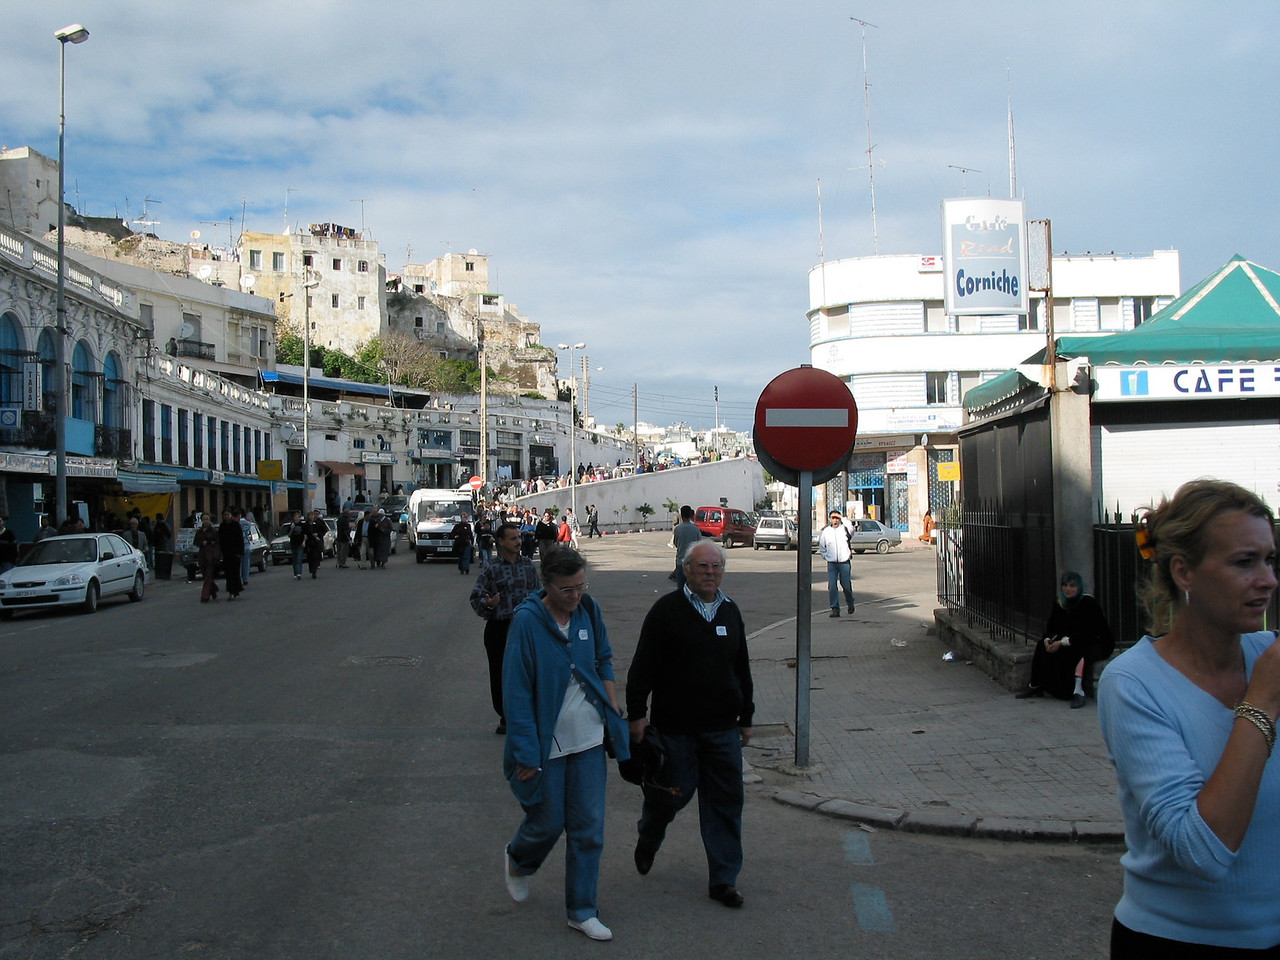 Since alot of the ferries leave the city at the same time, you'll often see a crush of people heading towards the port.